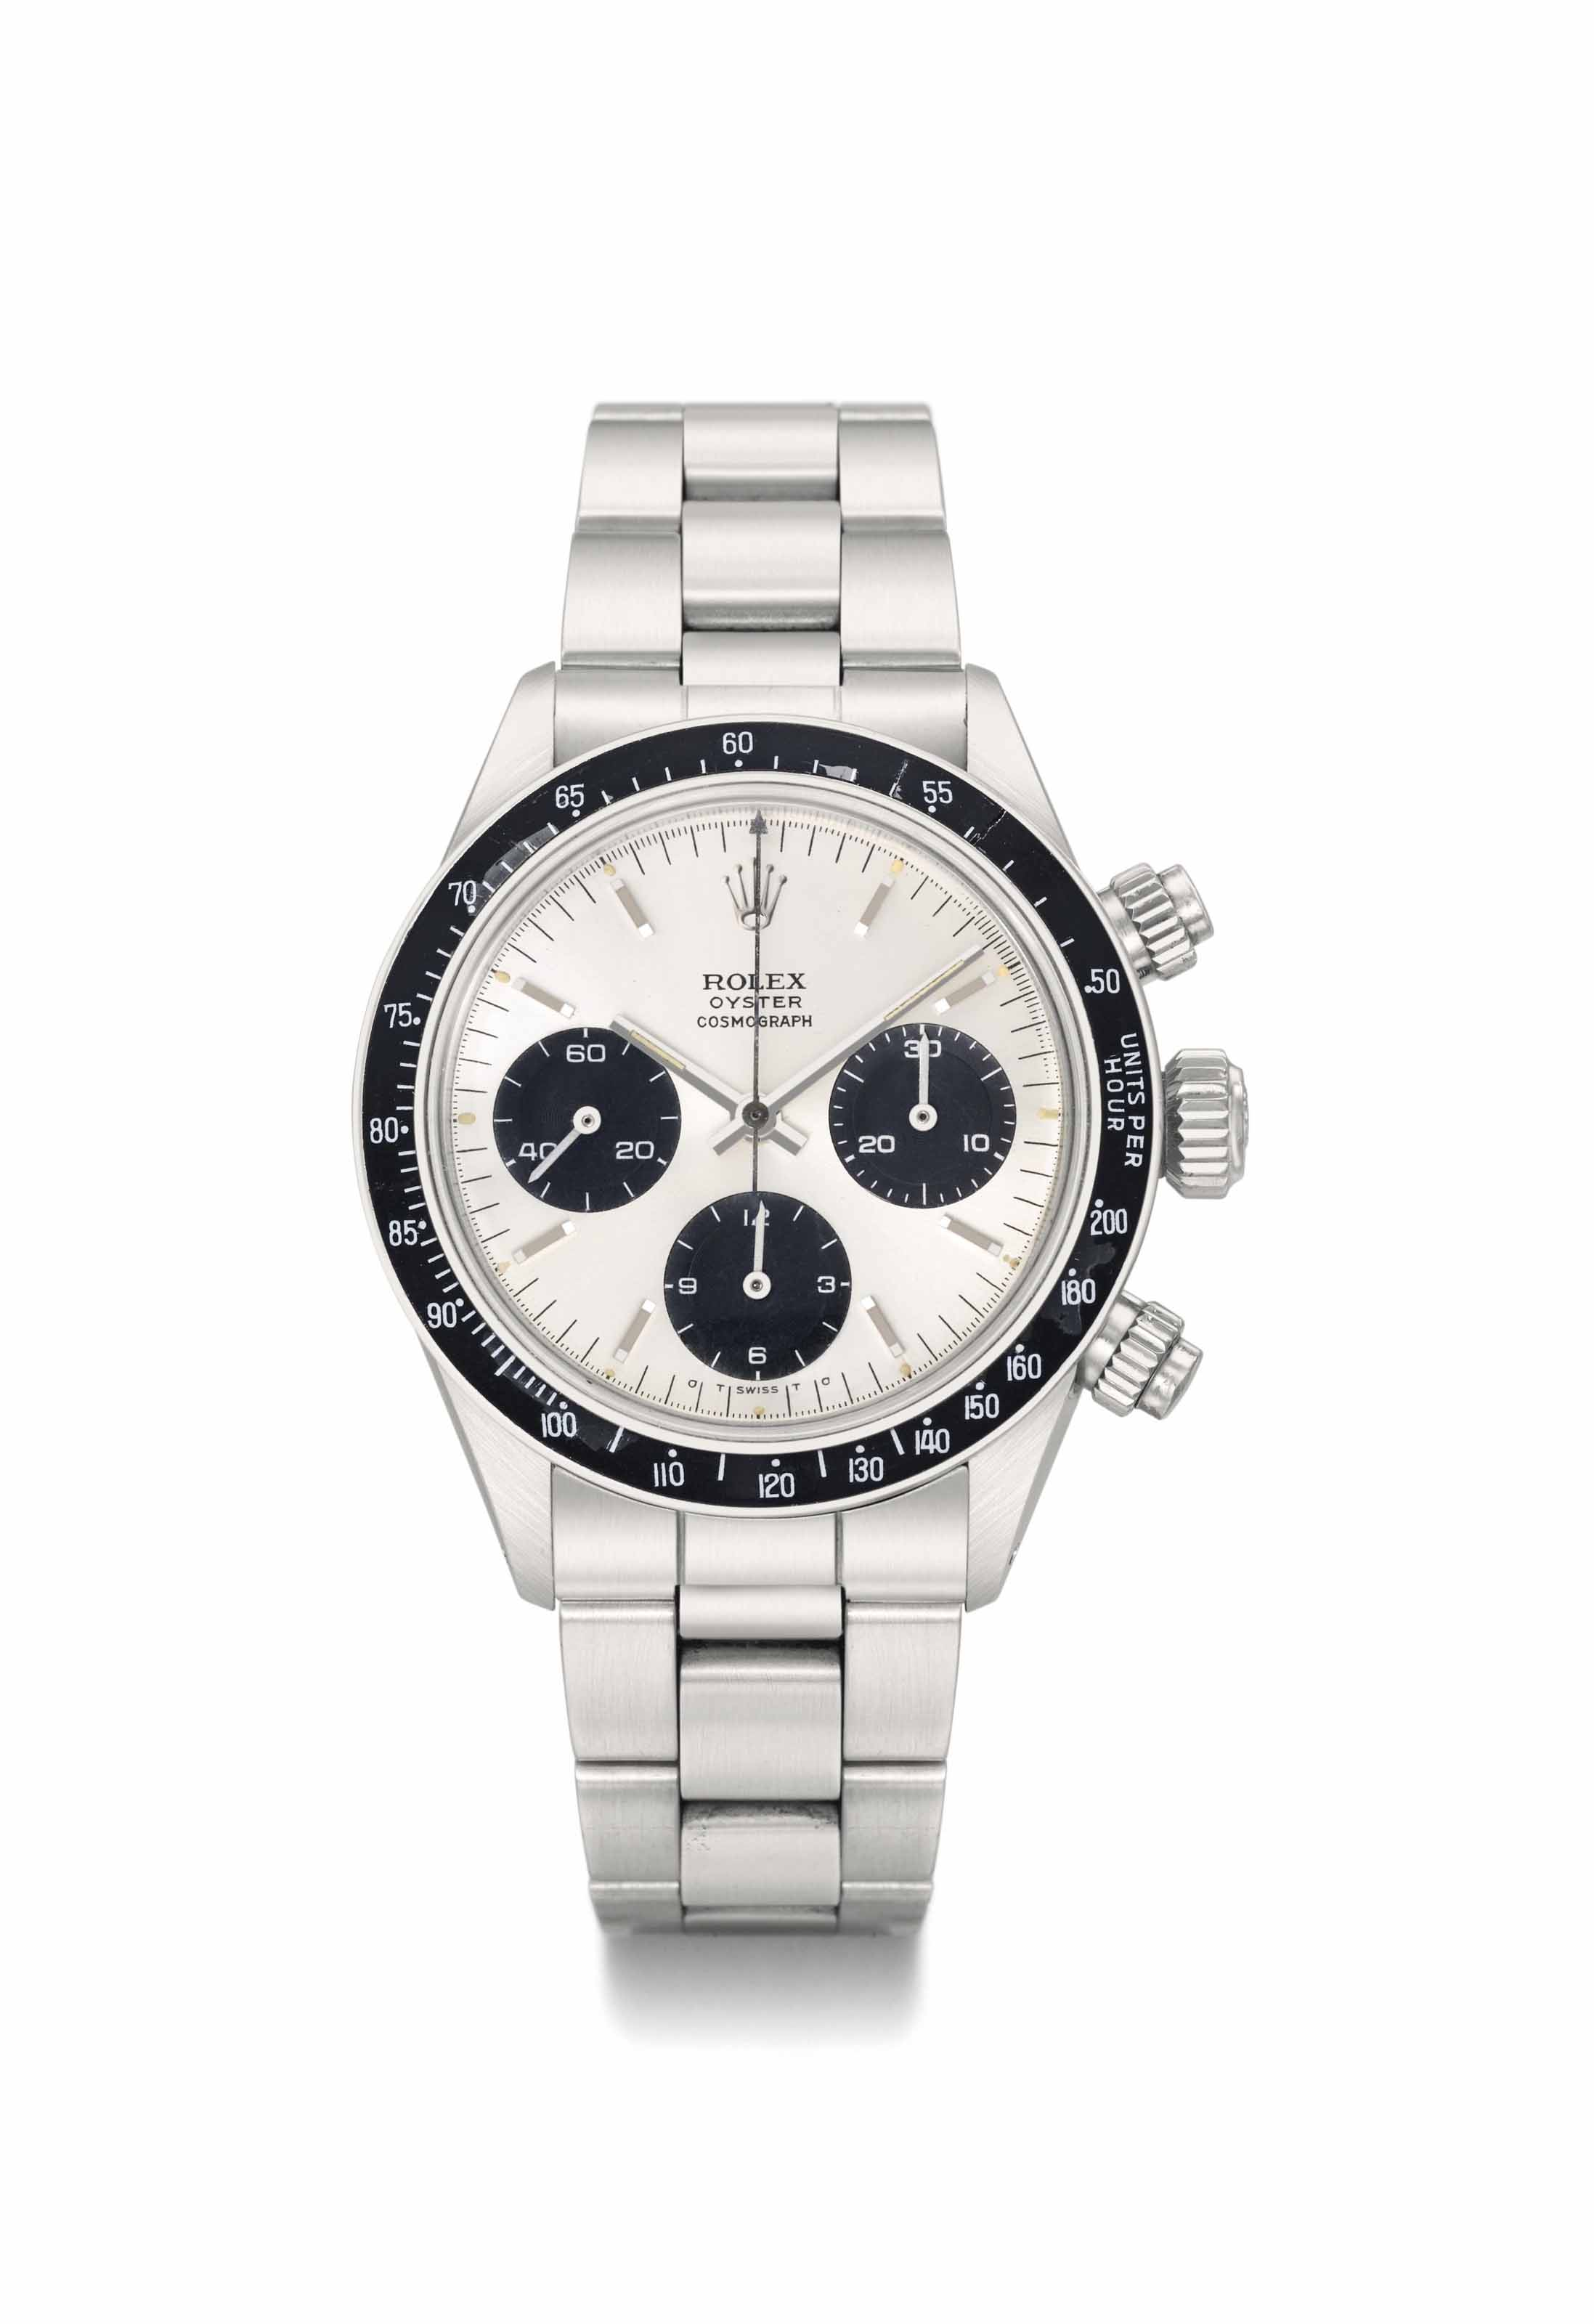 Rolex. A very rare and attractive stainless steel chronograph wristwatch with bracelet, original certificate and box, made for the Peruvian Airforce